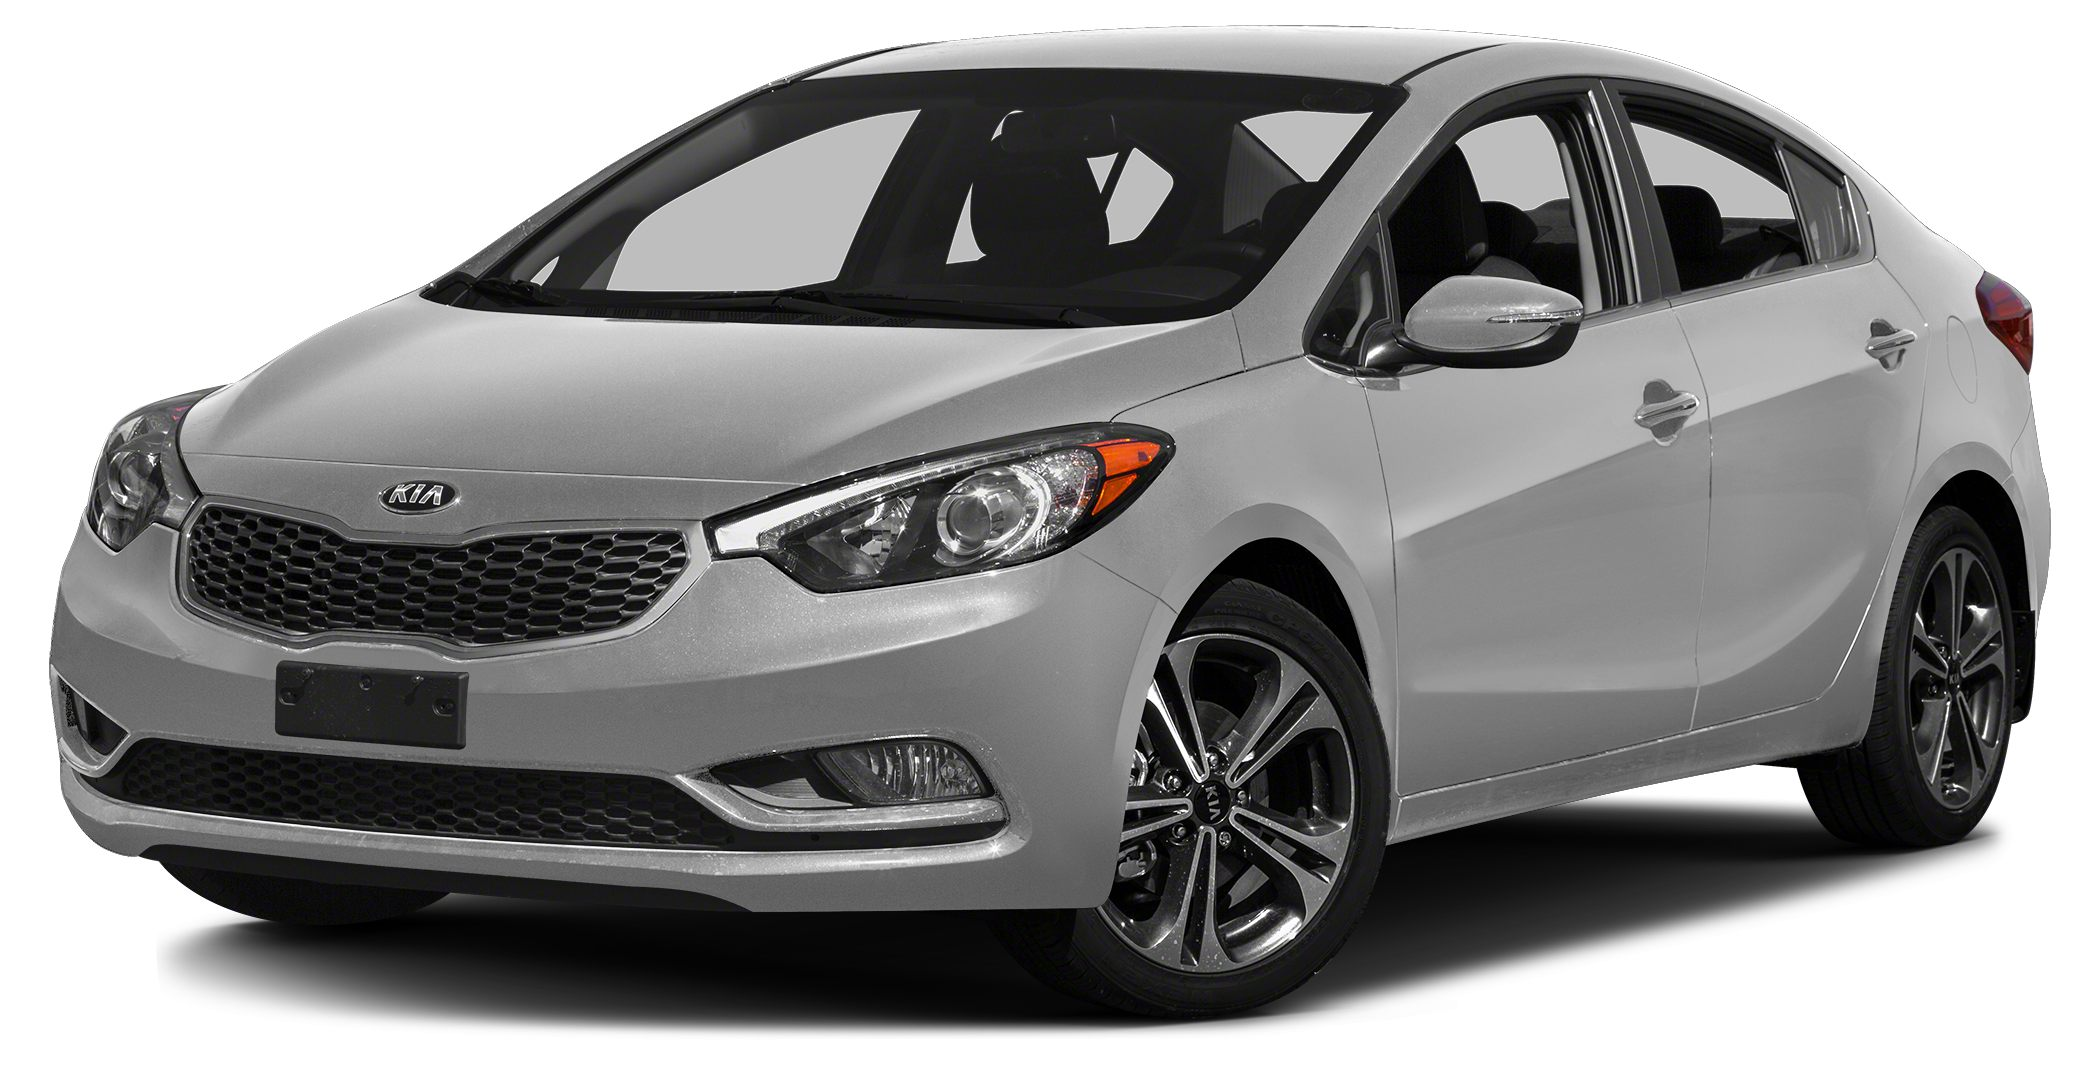 2015 Kia Forte LX Snatch a steal on this 2015 Kia Forte LX before someone else snatches it Roomy